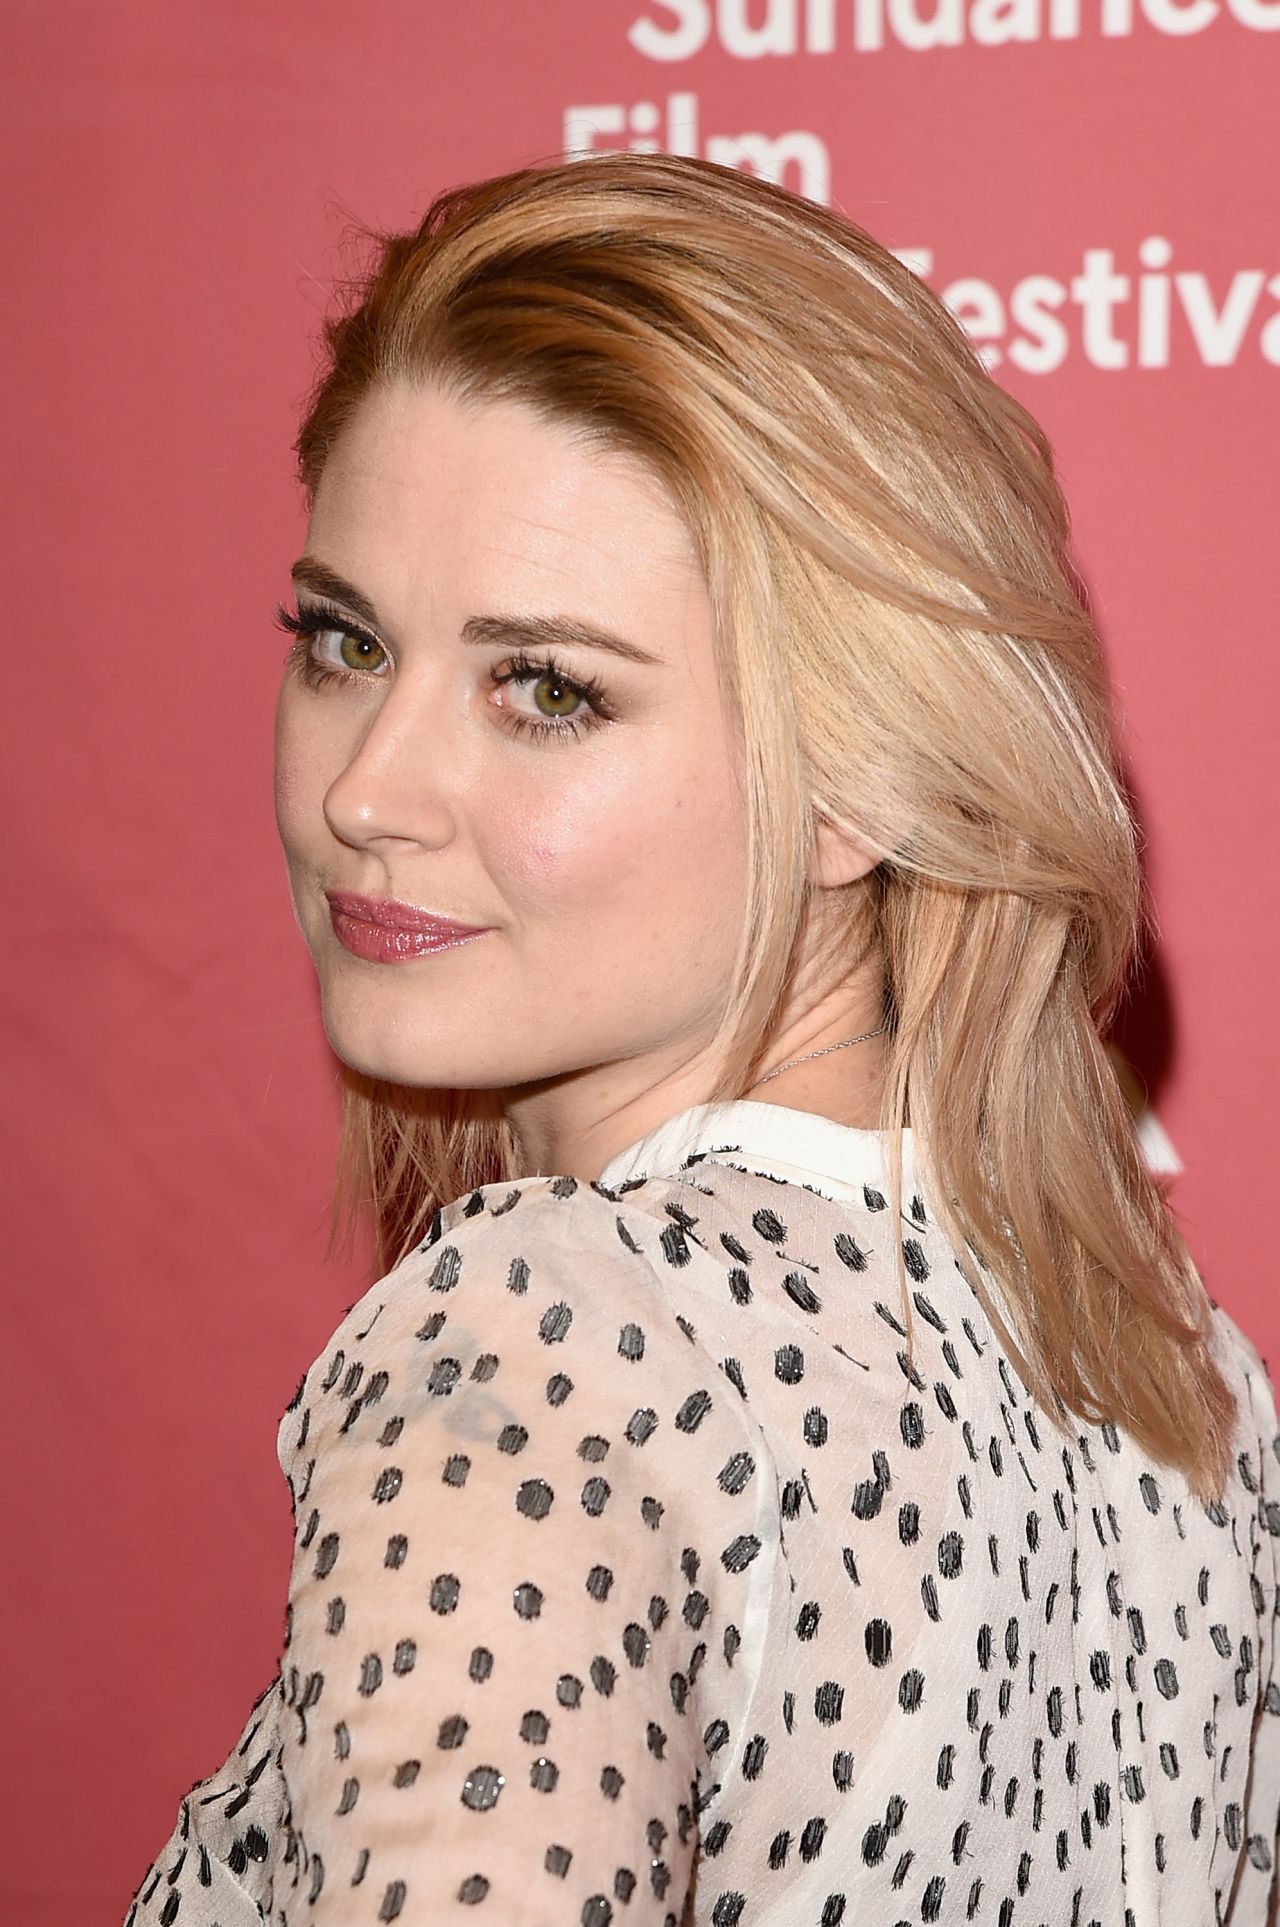 Alexandra breckenridge in zipper 2015 3 - 5 6